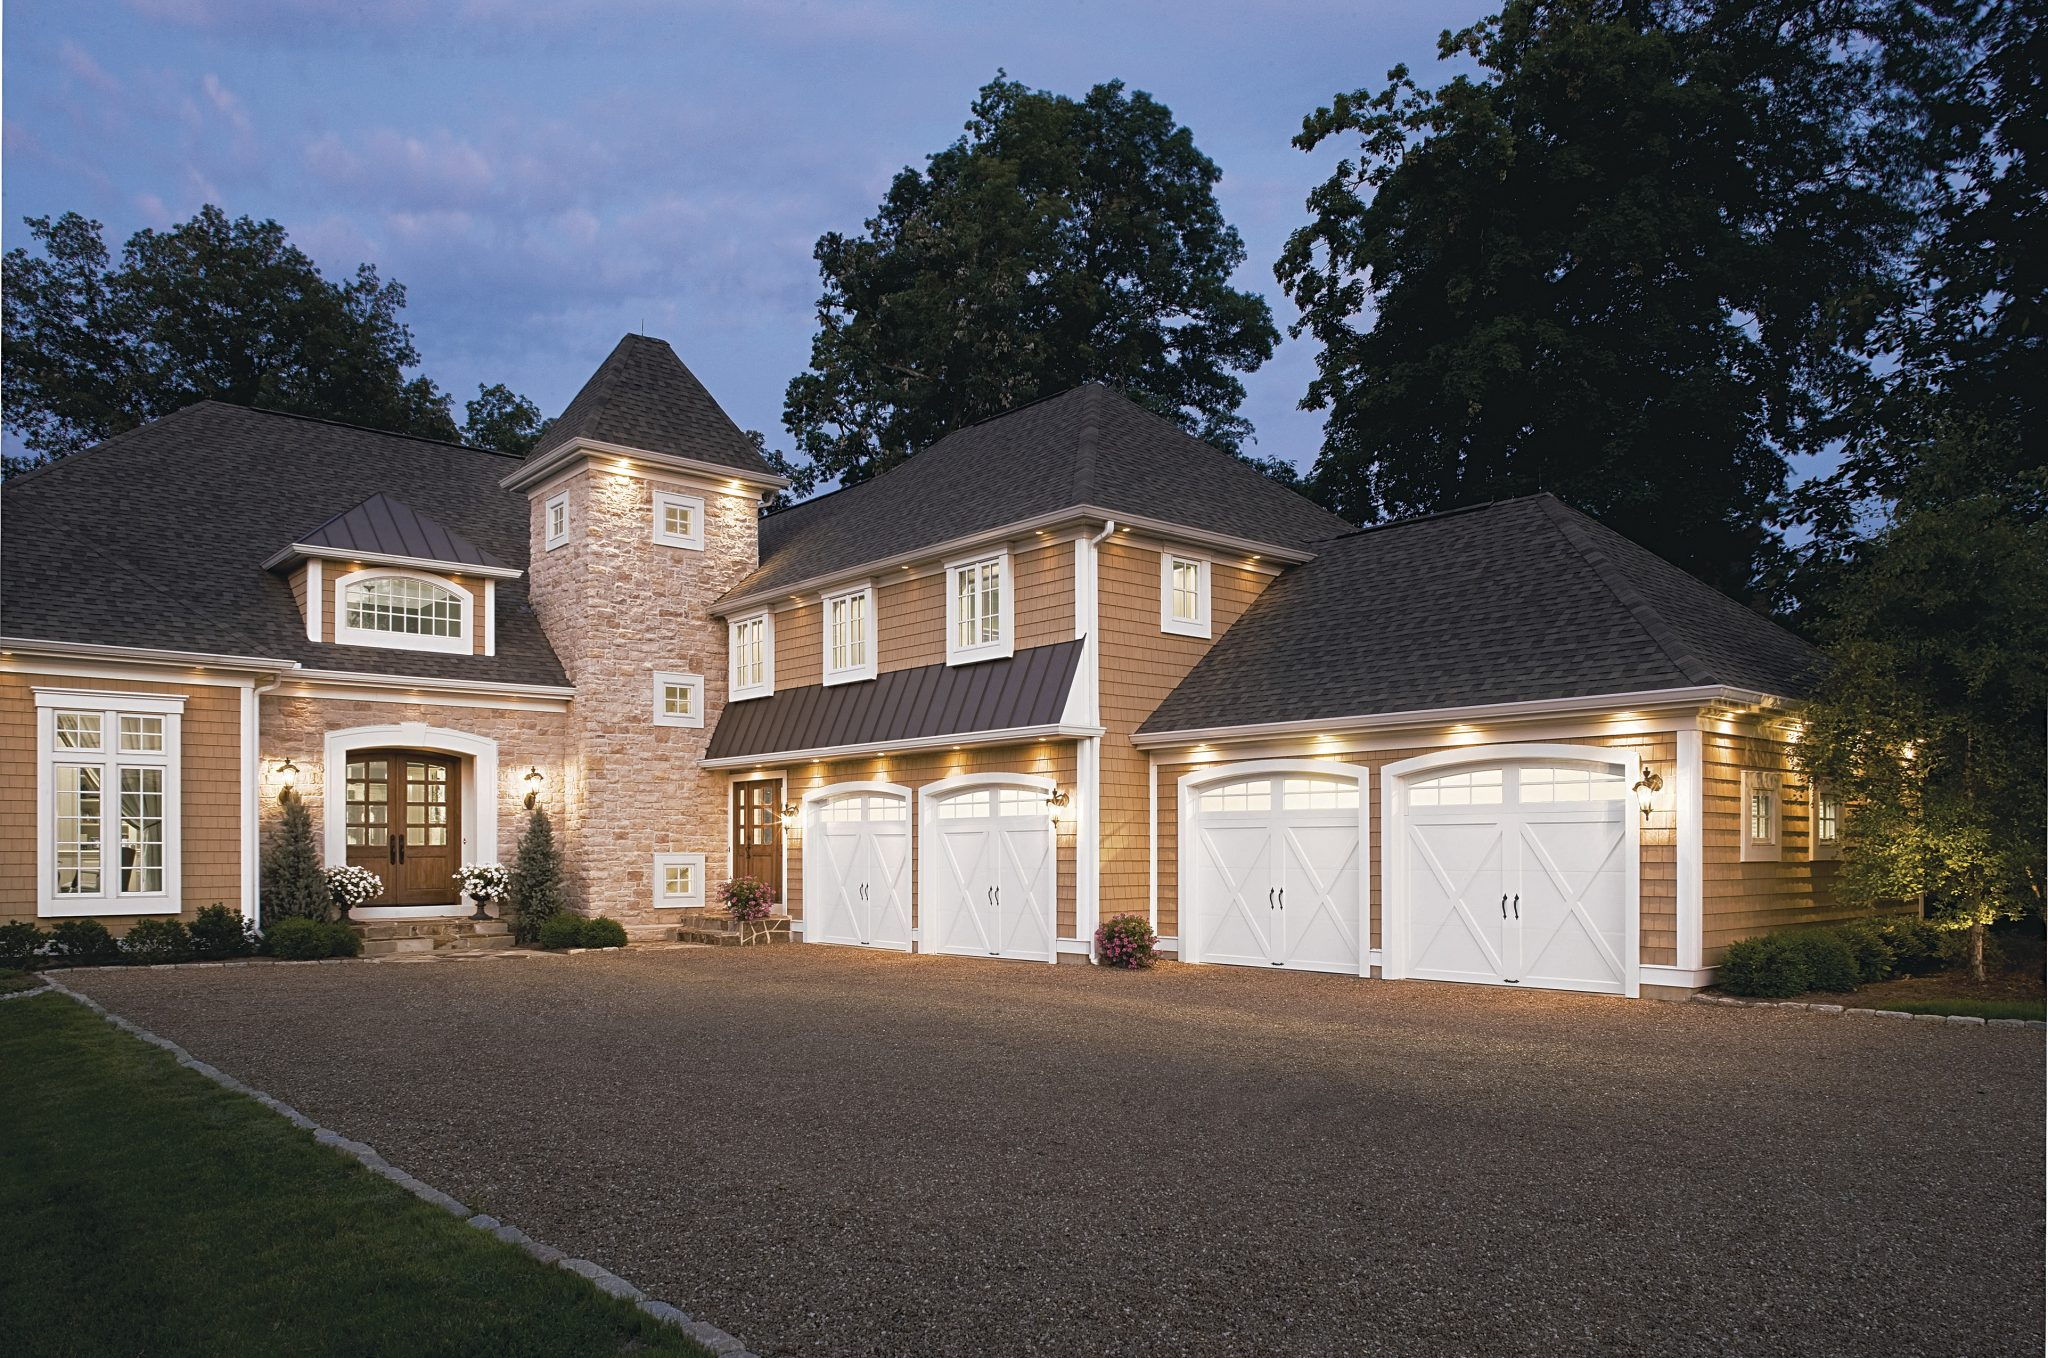 Garage Design Ottawa English Guide To Buying A New Garage Door Promaster Garage Door